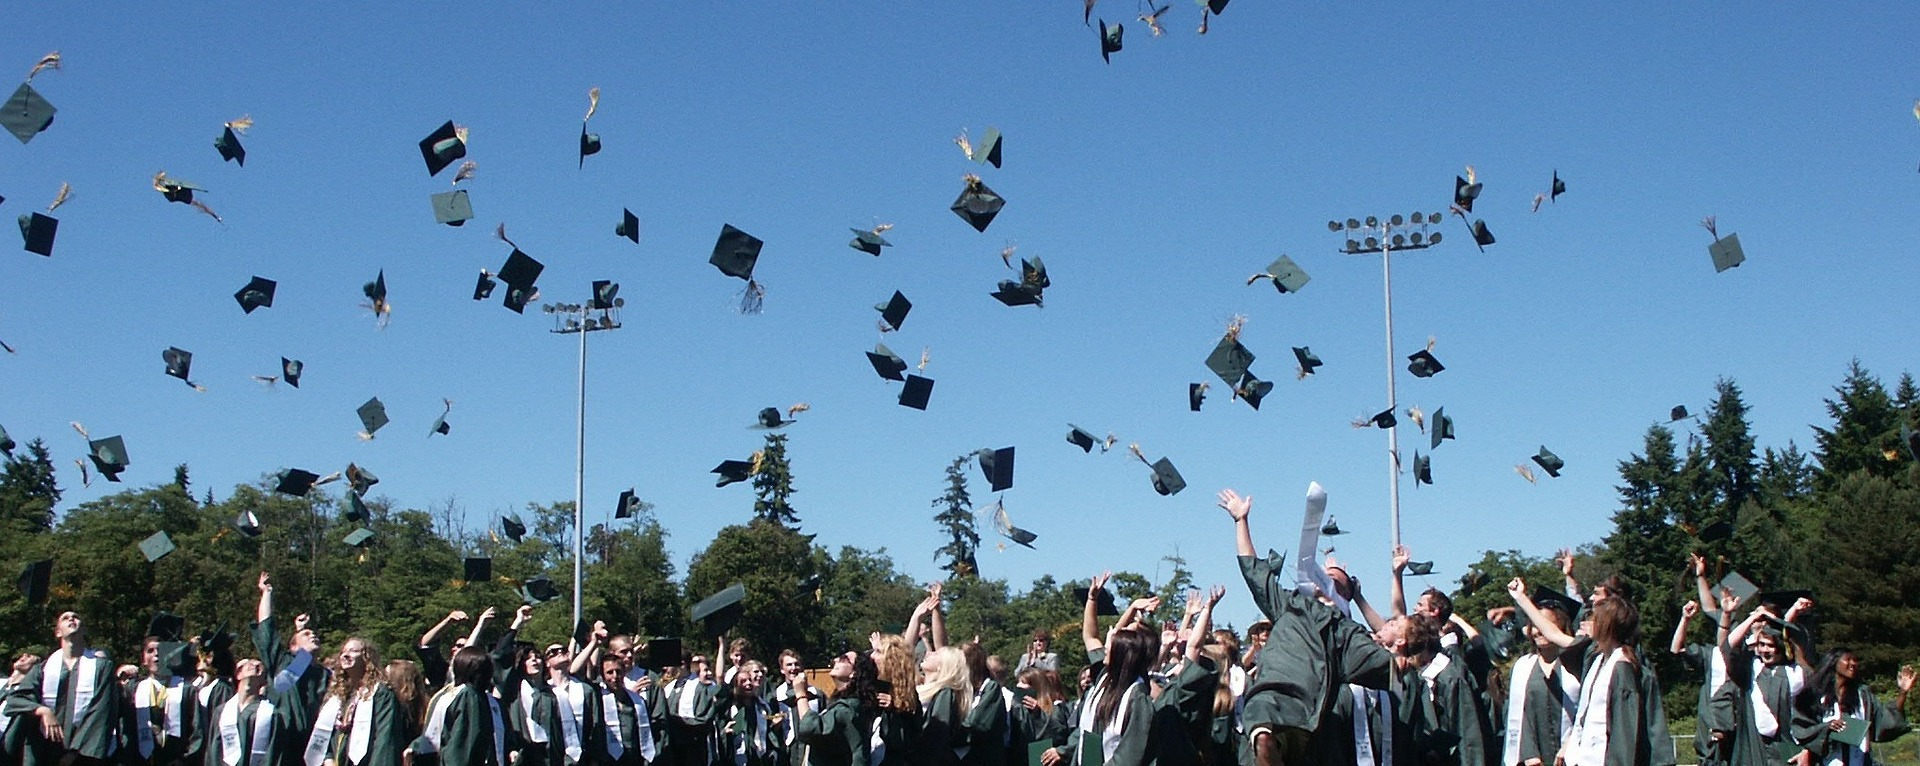 students throwing mortarboards at graduation